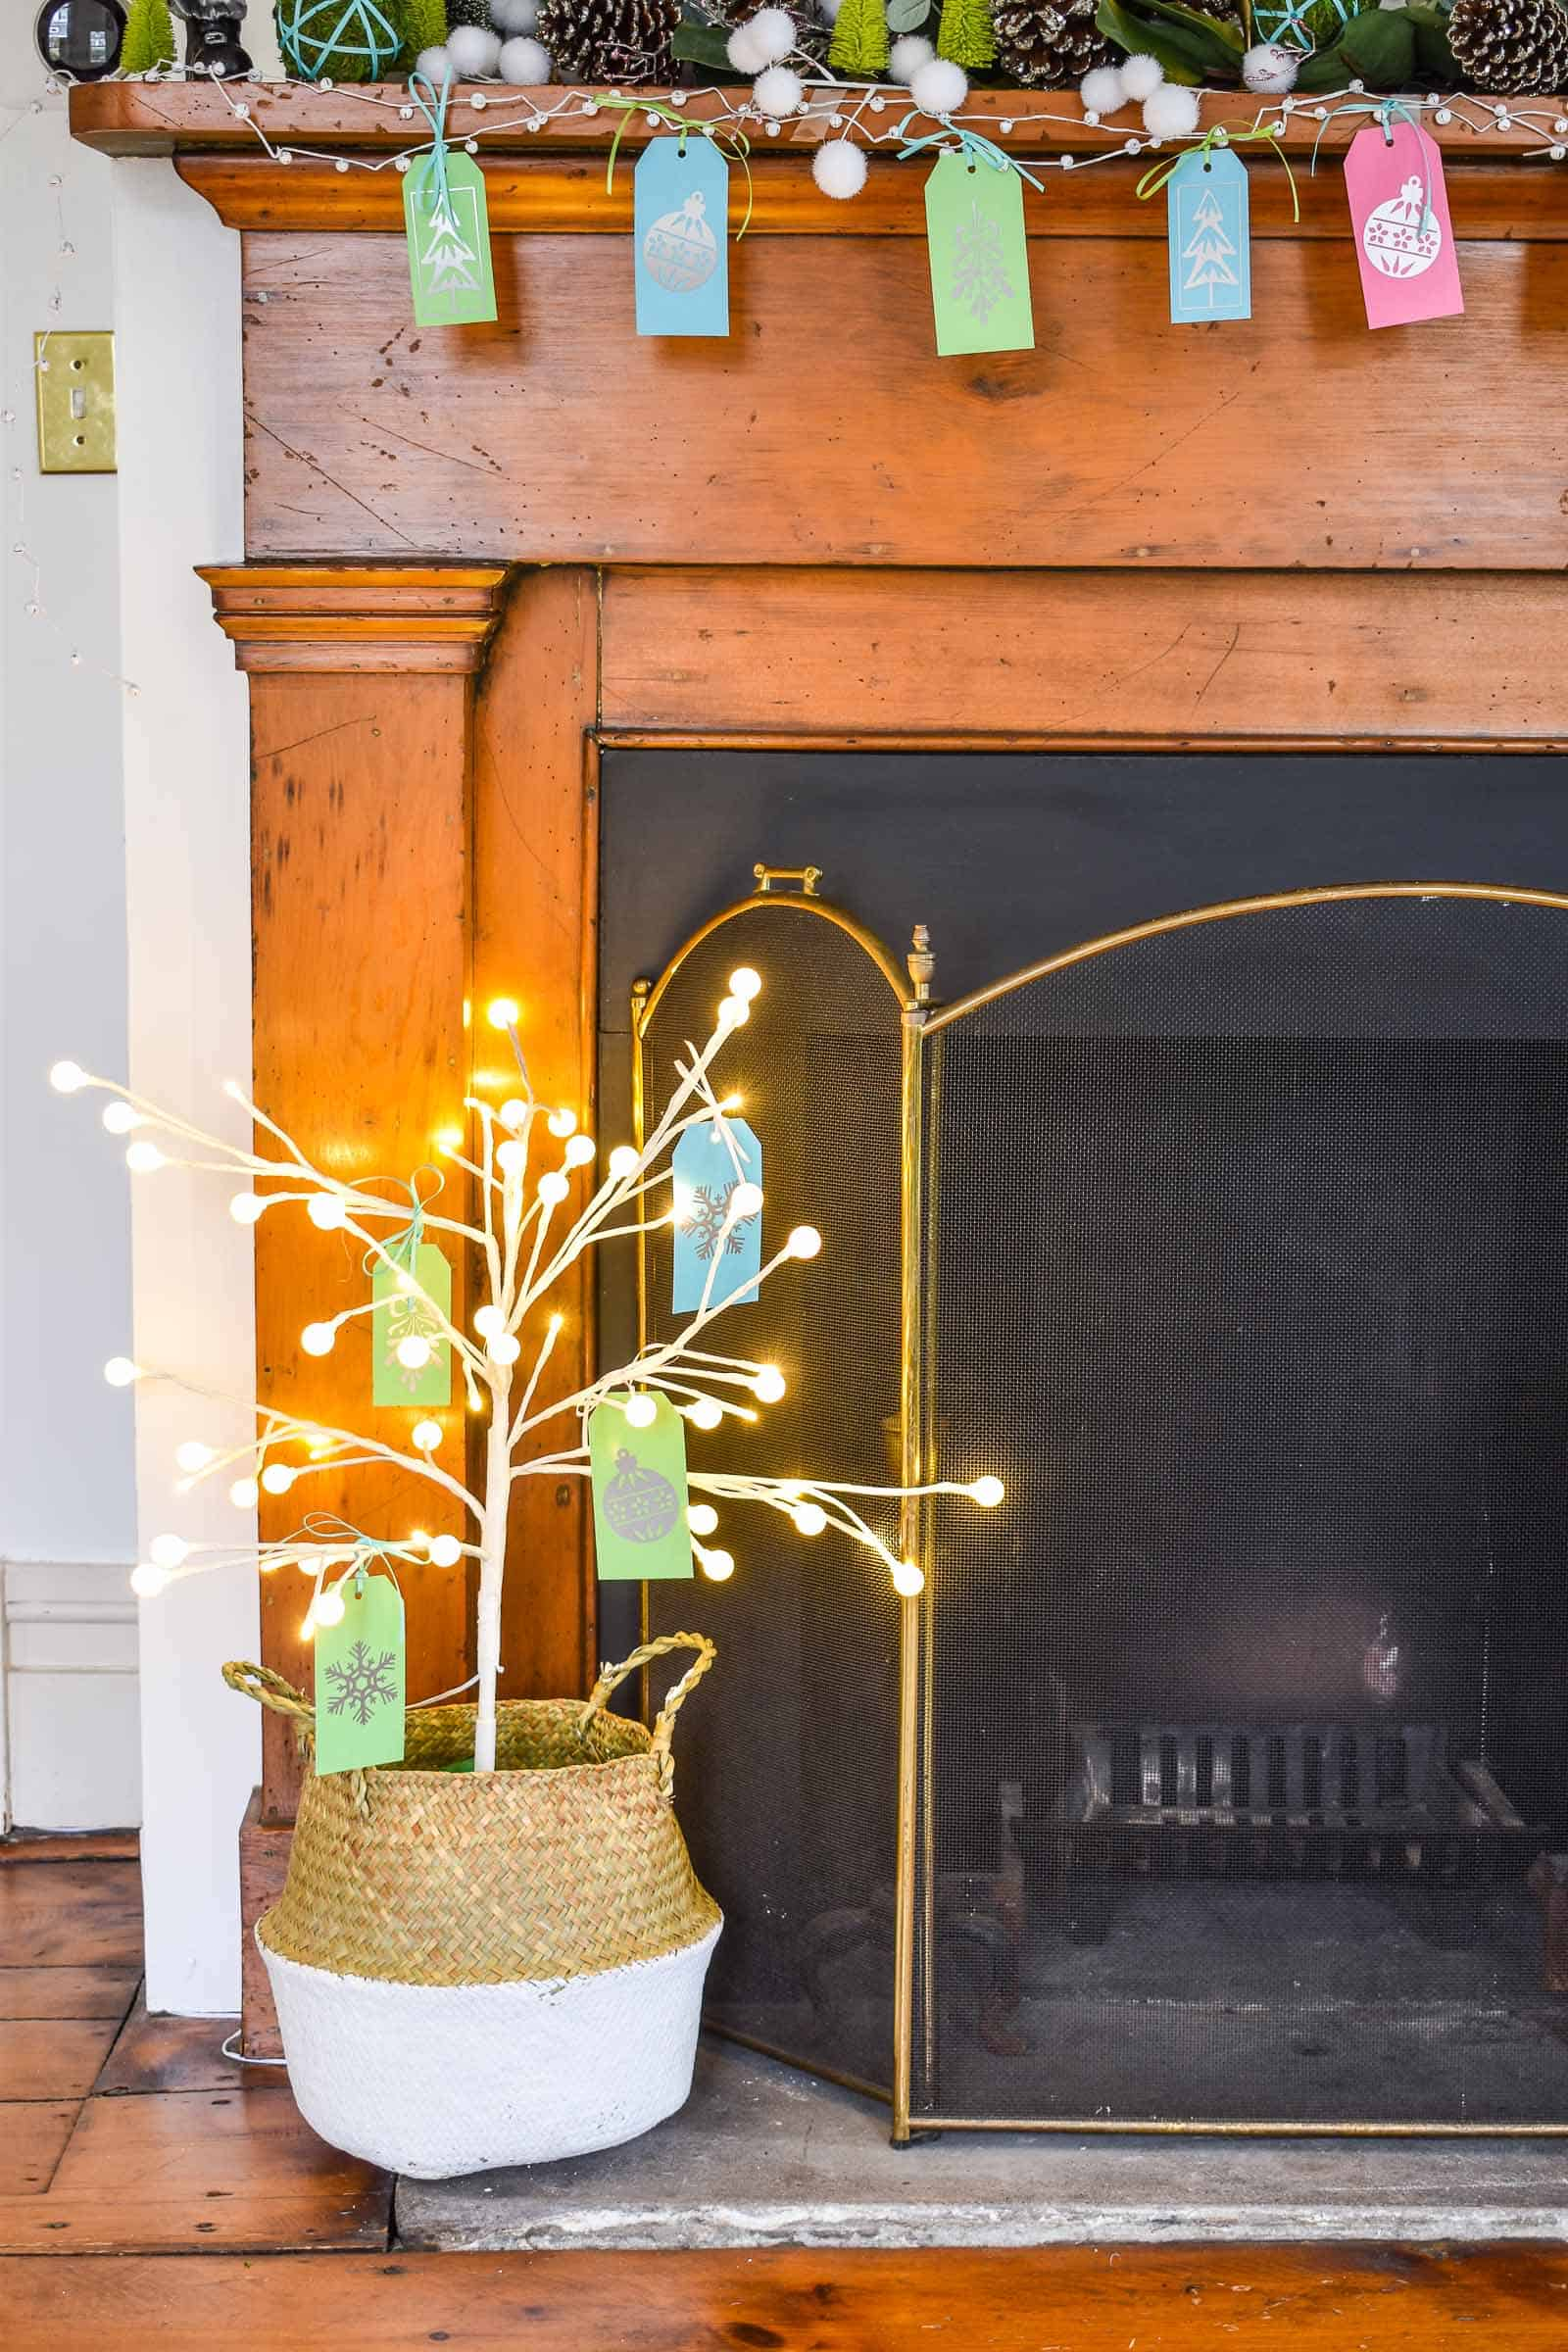 LED tree at the base of the mantel